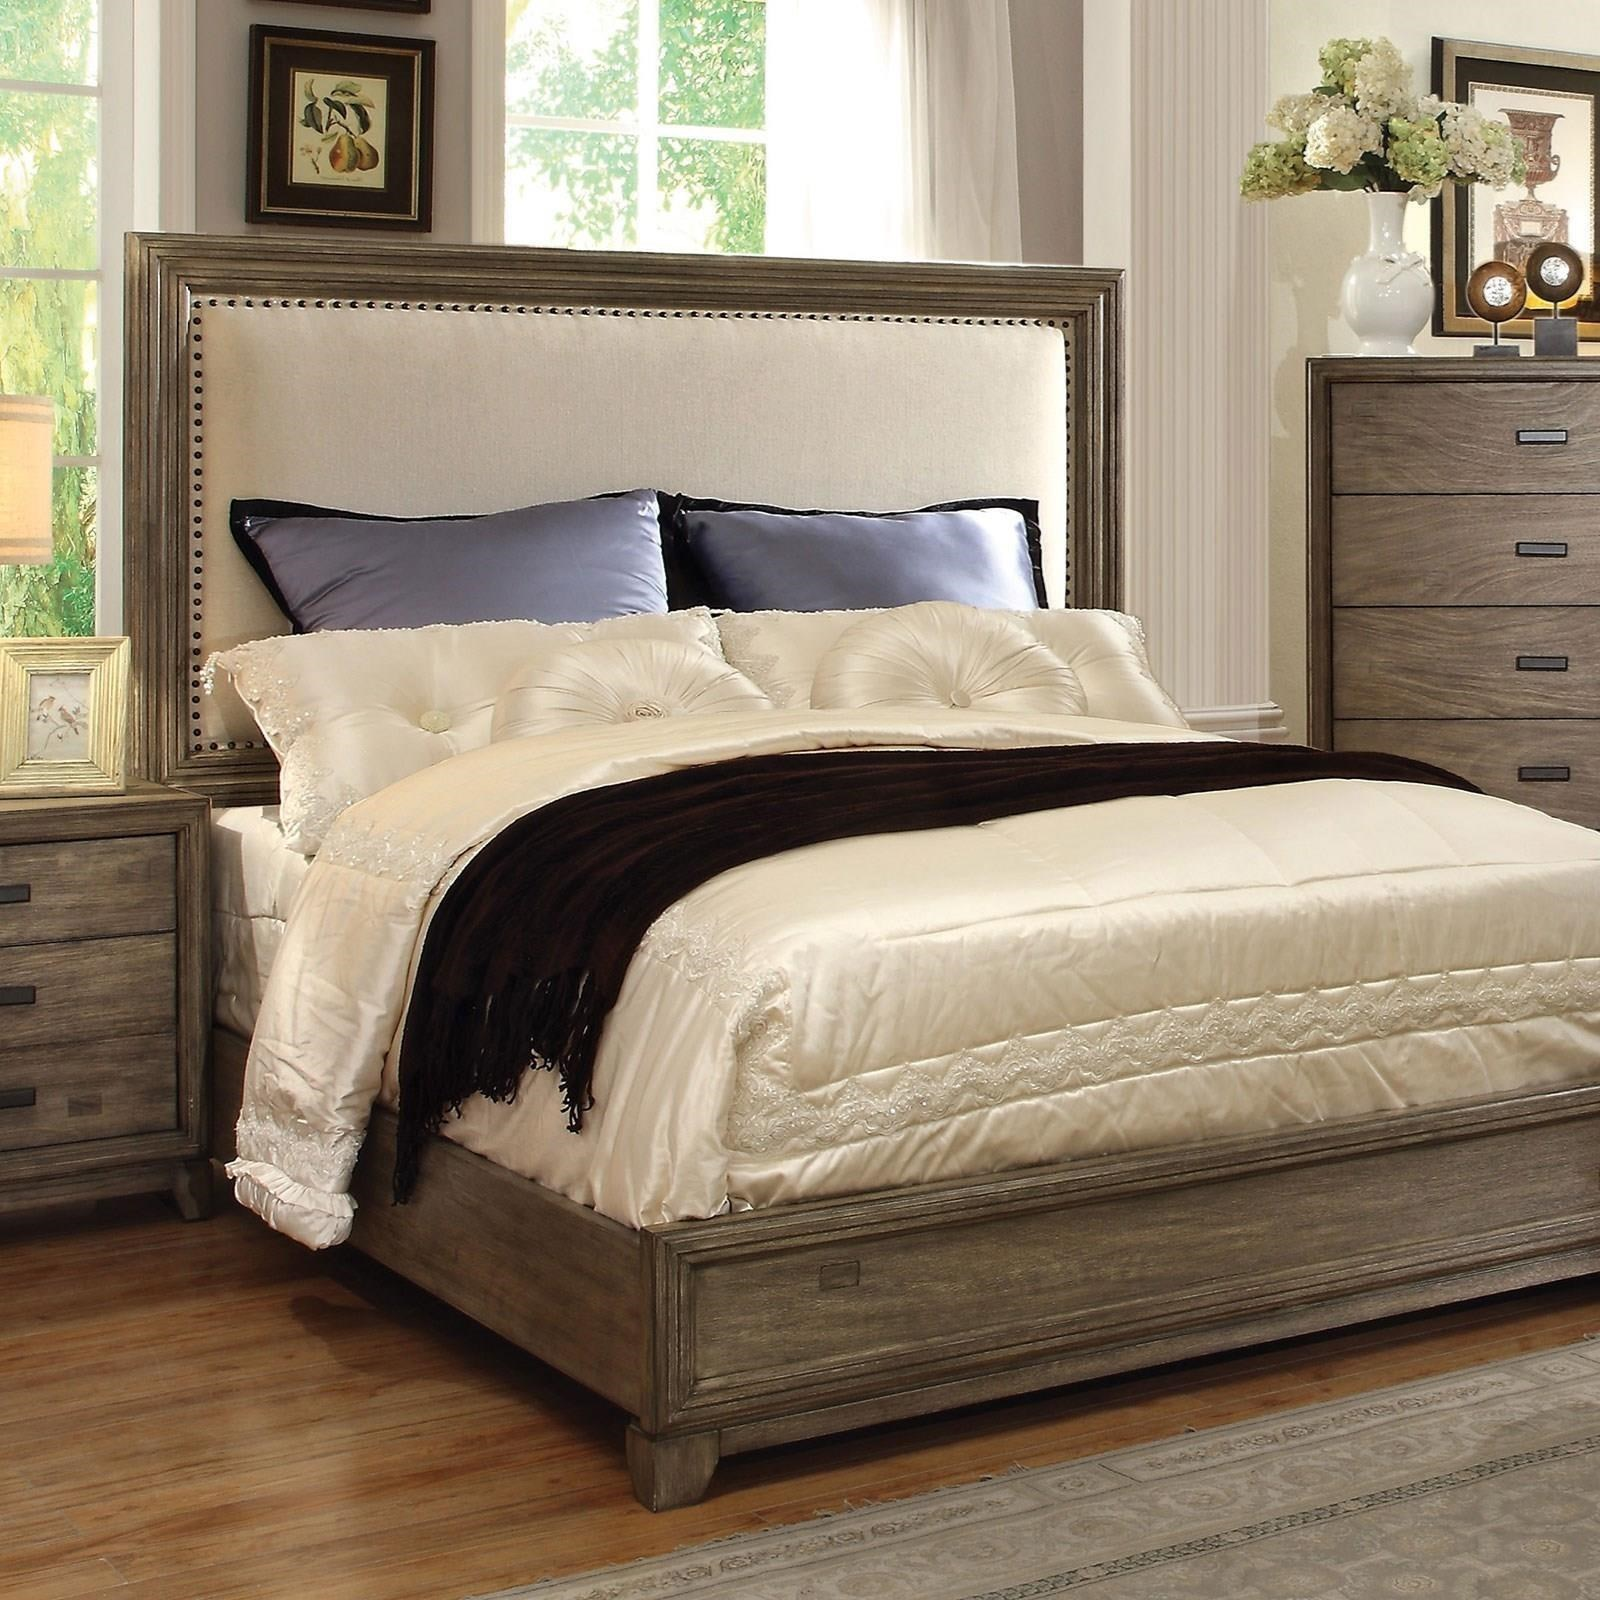 Antler Queen Bed at Household Furniture